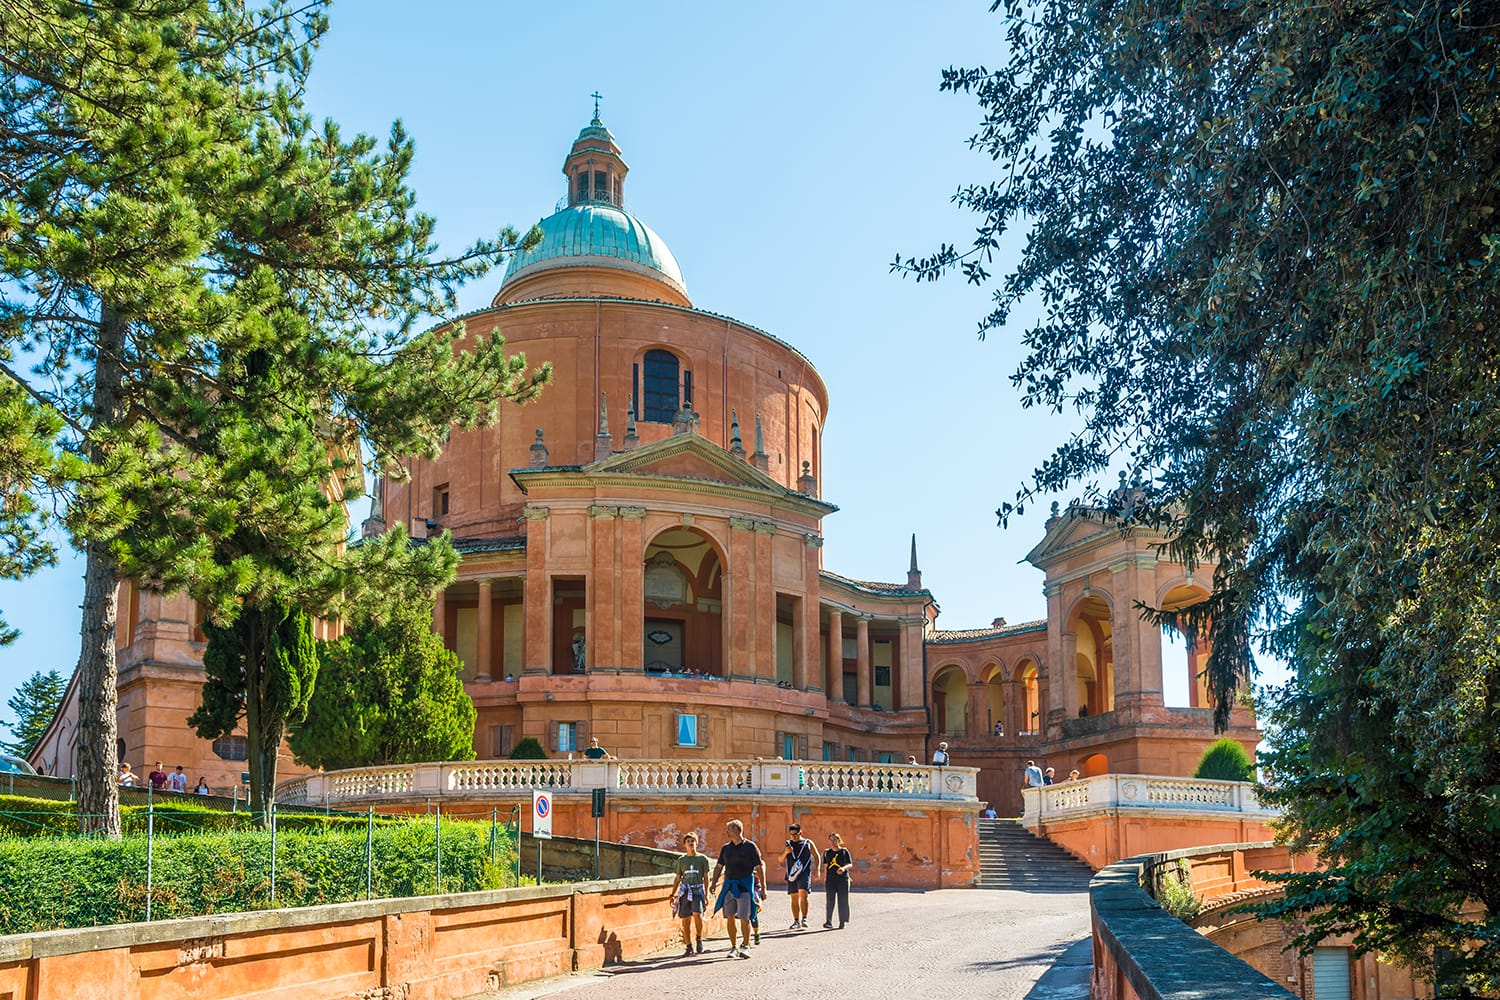 View at the Sanctuary of the Madonna di San Luca in Bologna, Italy